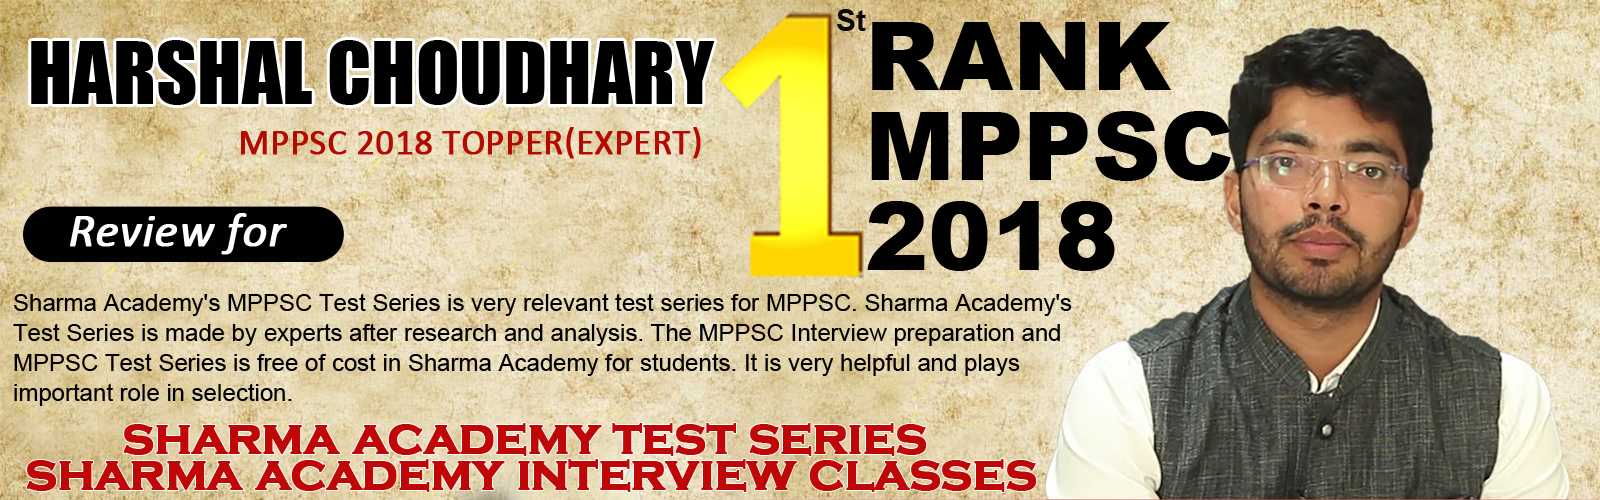 Sharma Academy Best UPSC MPPSC IAS Coaching in Indore, MPPSC Preparation, MPPSC Syllabus, MPPSC Test Series, MPPSC Interview